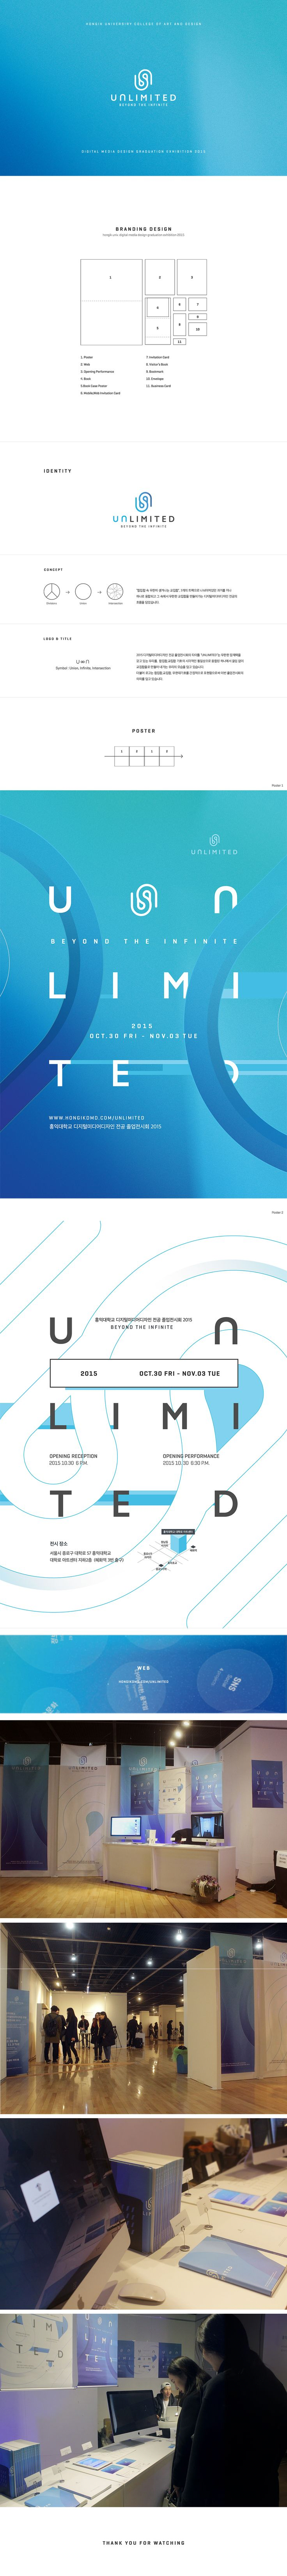 심혜진, 박여민│ Unlimited│ Major in Digital Media Design │#hicoda │hicoda.hongik.ac.kr